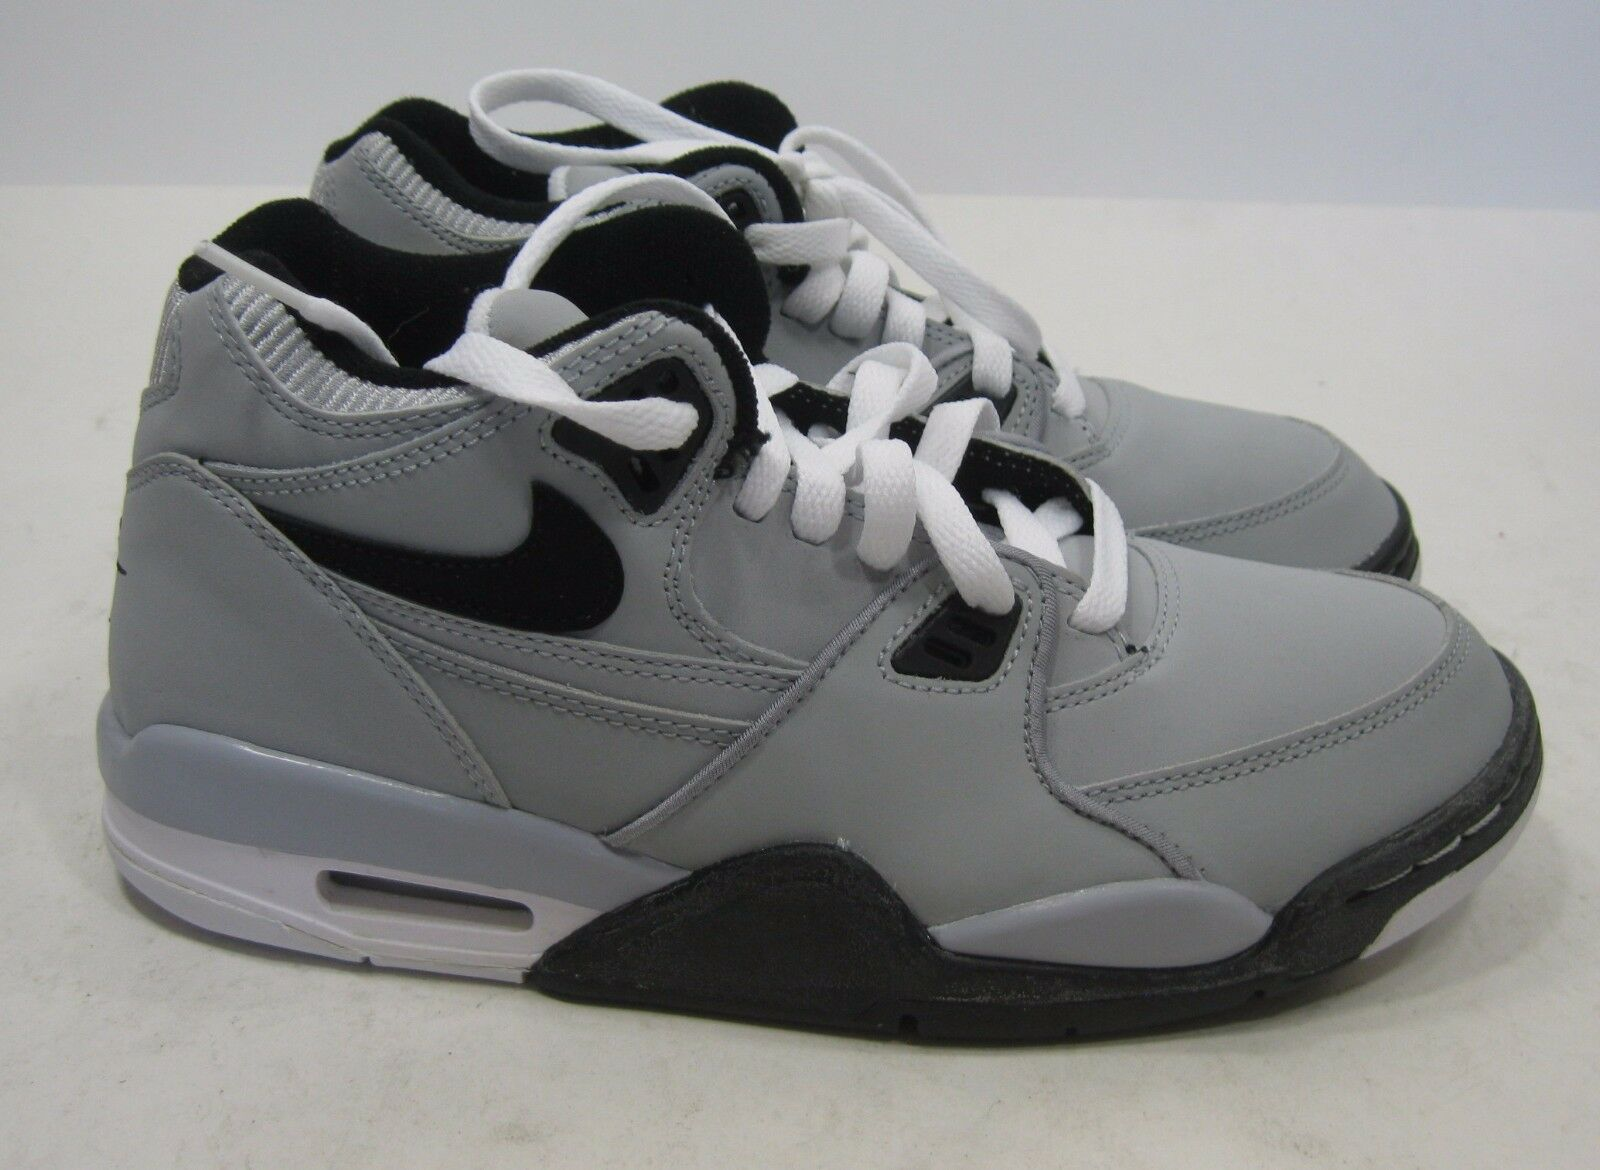 New 318003-004 Nike Air Flight '89 Wolf Grey shoes youth Size 5.5 - women size 7